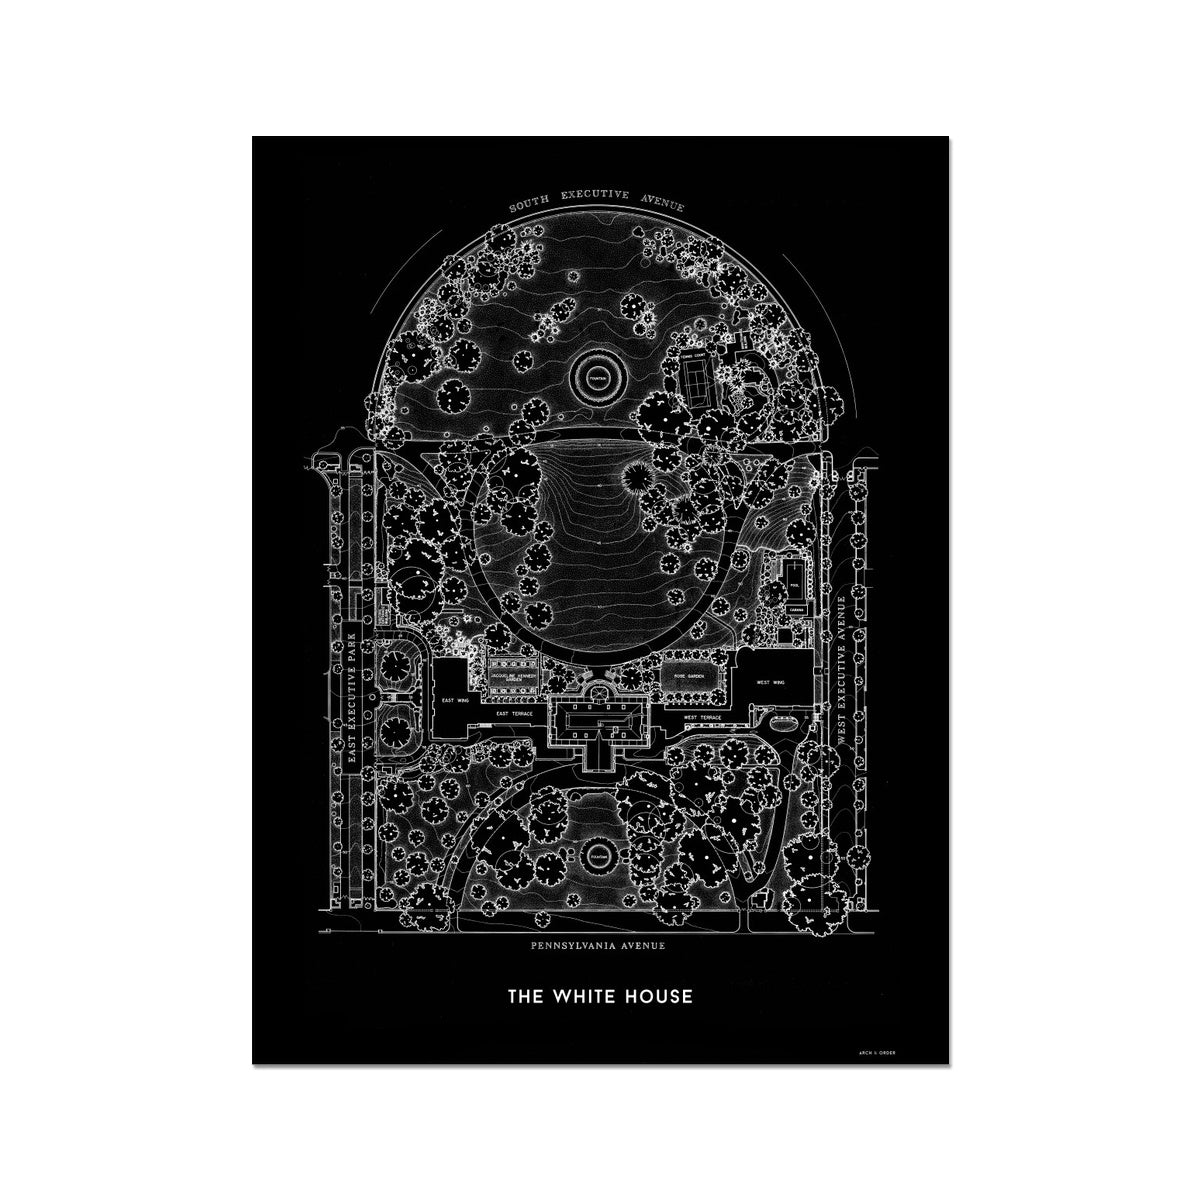 The White House Site Plan - Black -  Etching Paper Print